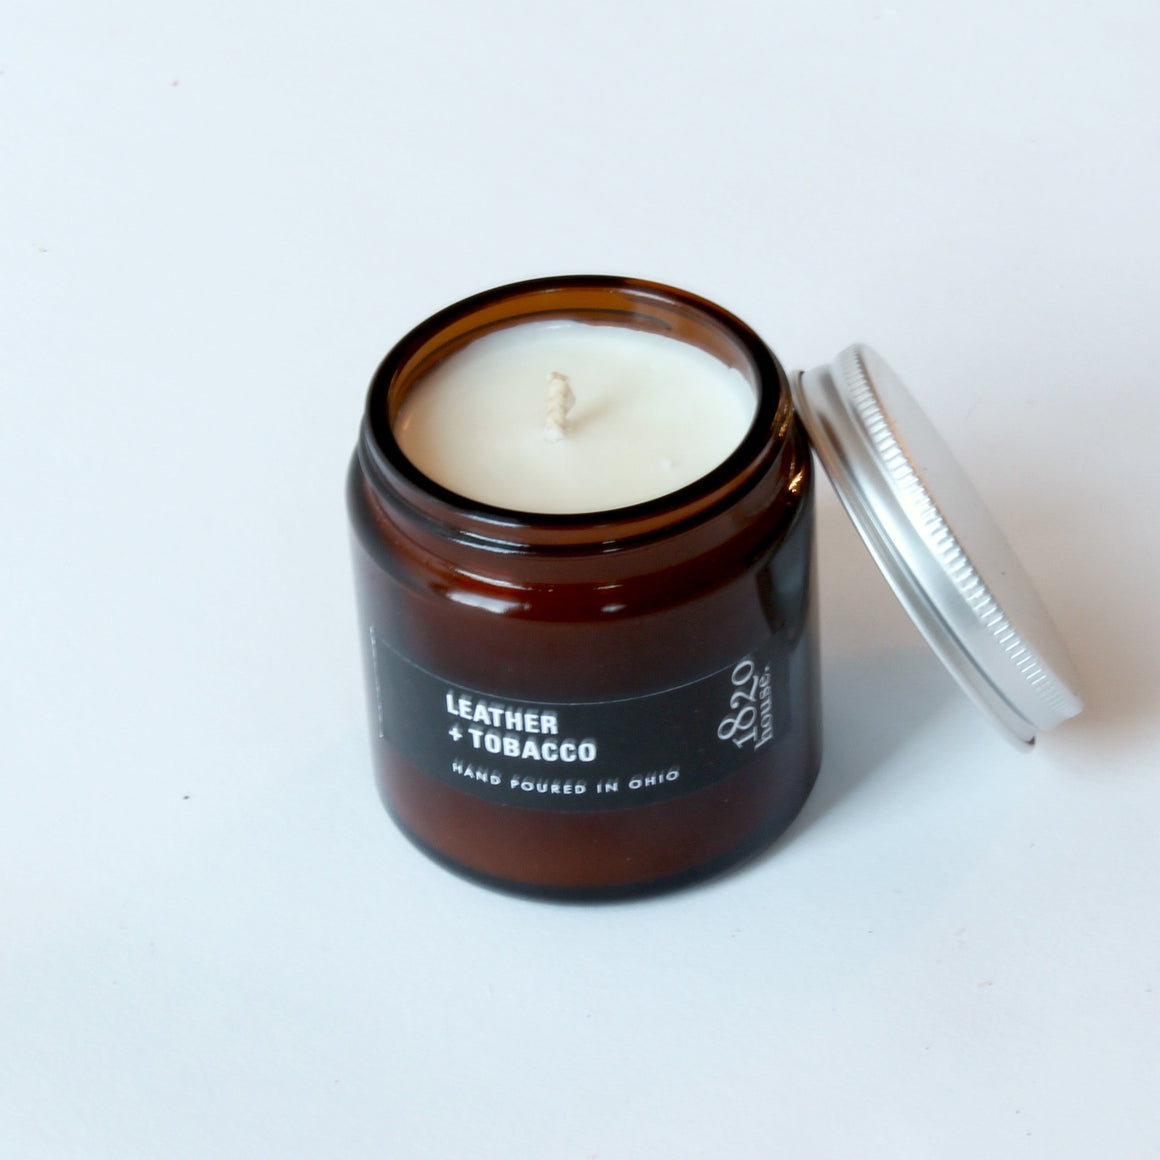 Leather & Tobacco Candle